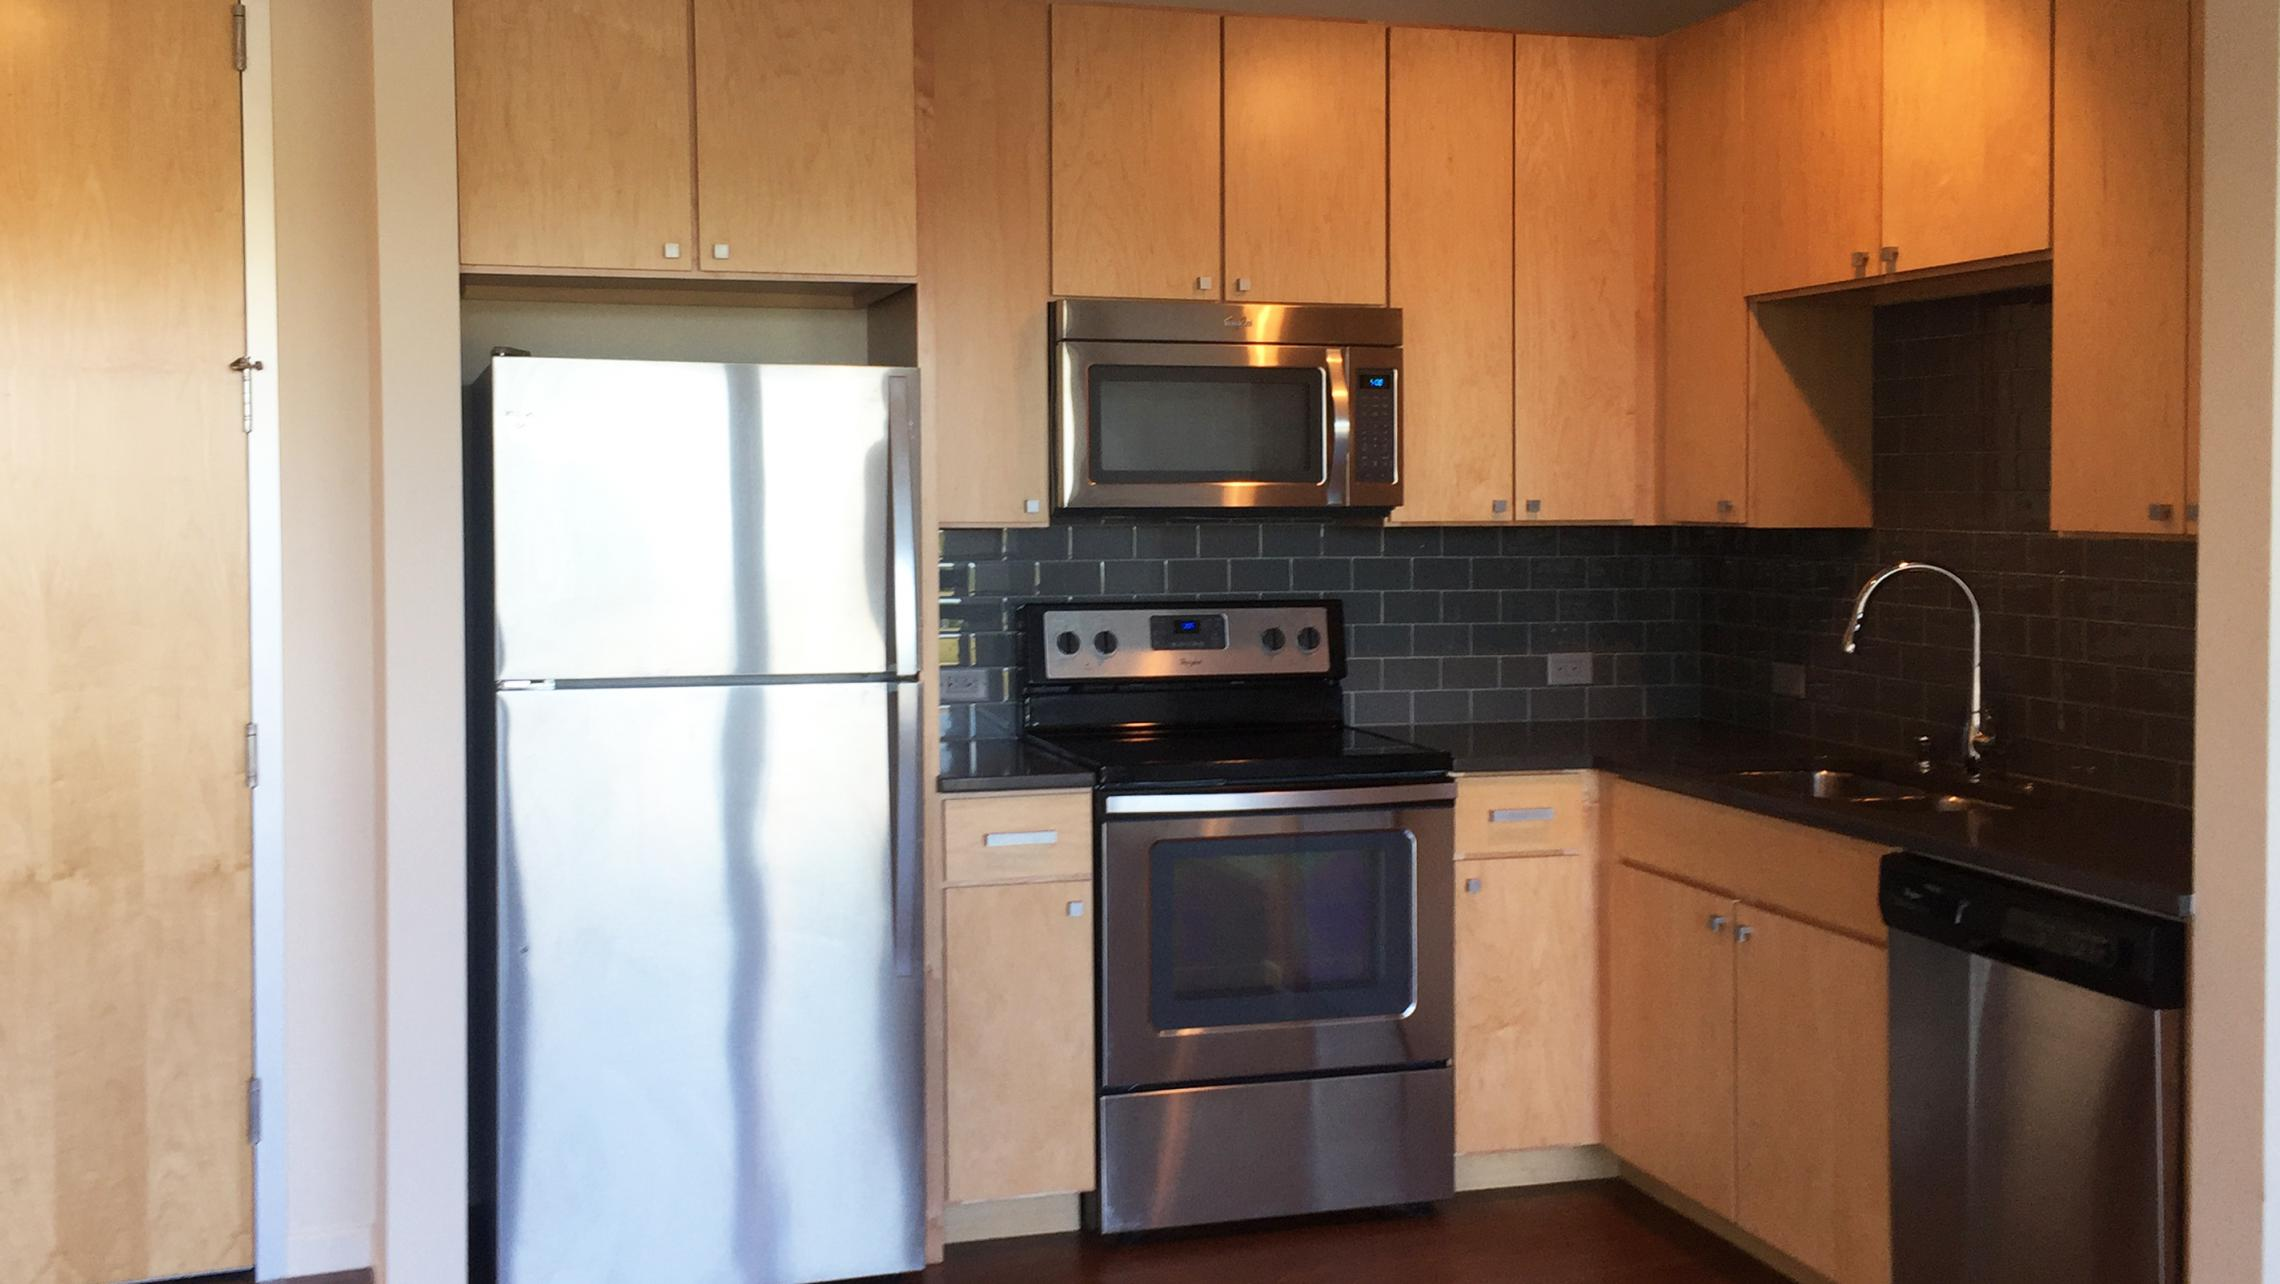 ULI Nine Line Apartment 409 - Kitchen with Stainless Steel Appliances